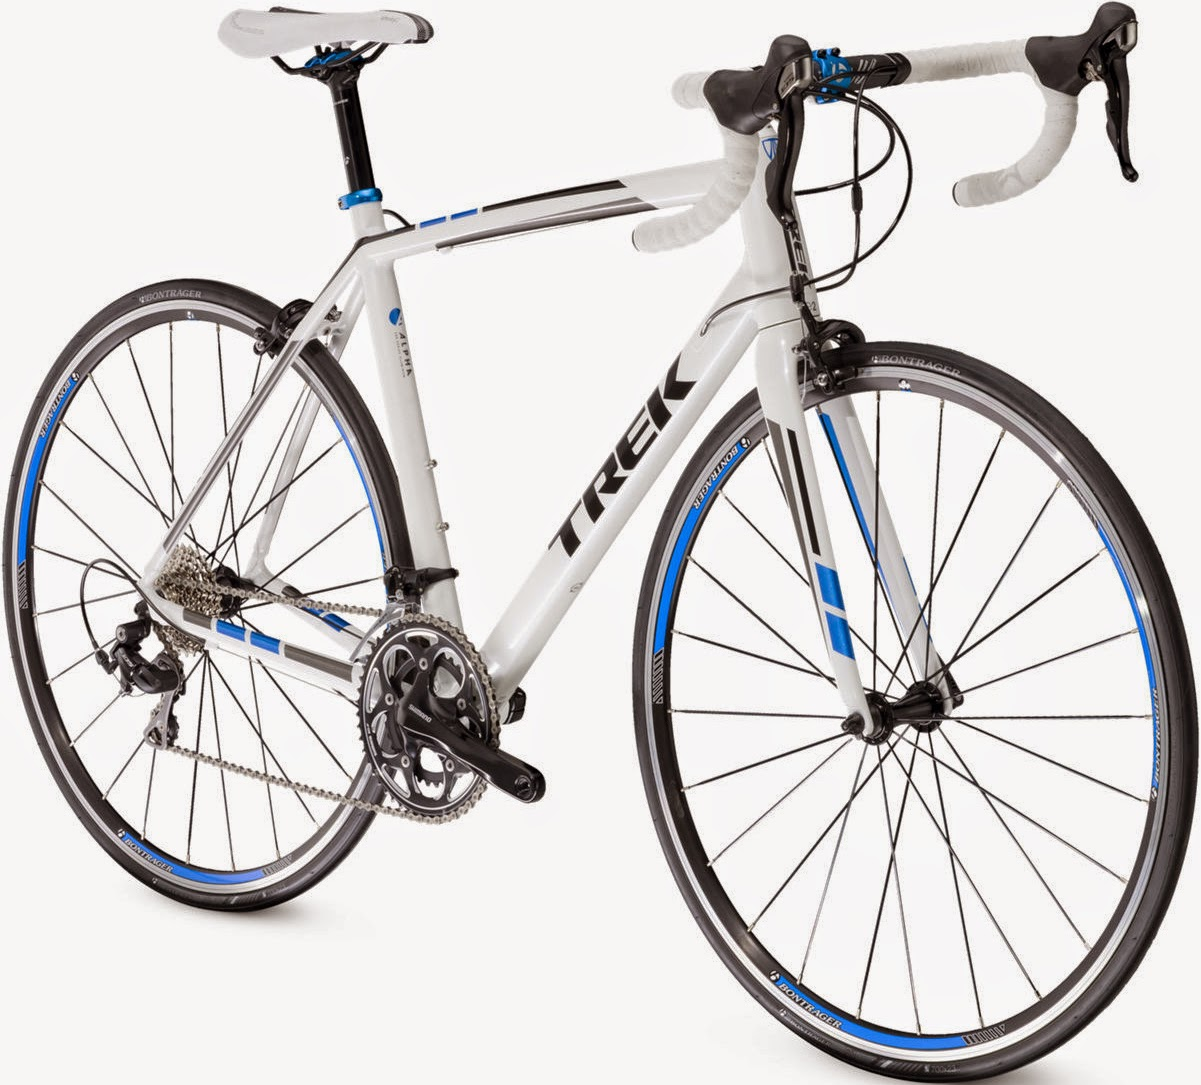 Bumsteads Road and Mountain Bikes: 2014 Trek Madone 2 1 is